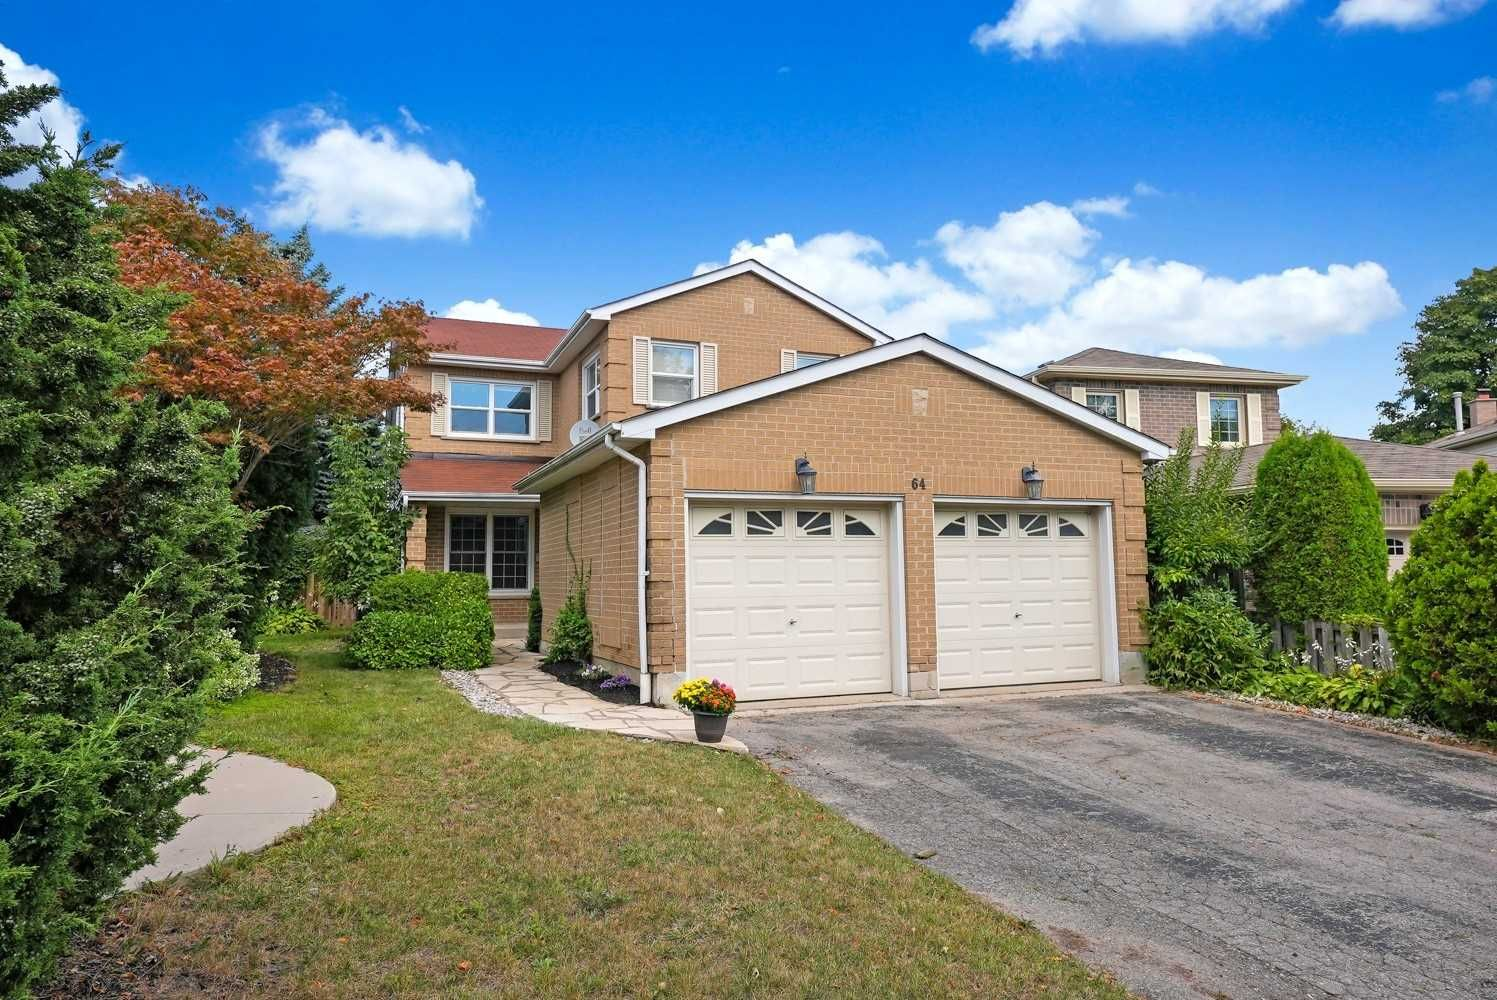 Main Photo: 64 Hemingford Place in Whitby: Pringle Creek House (2-Storey) for sale : MLS®# E5369628